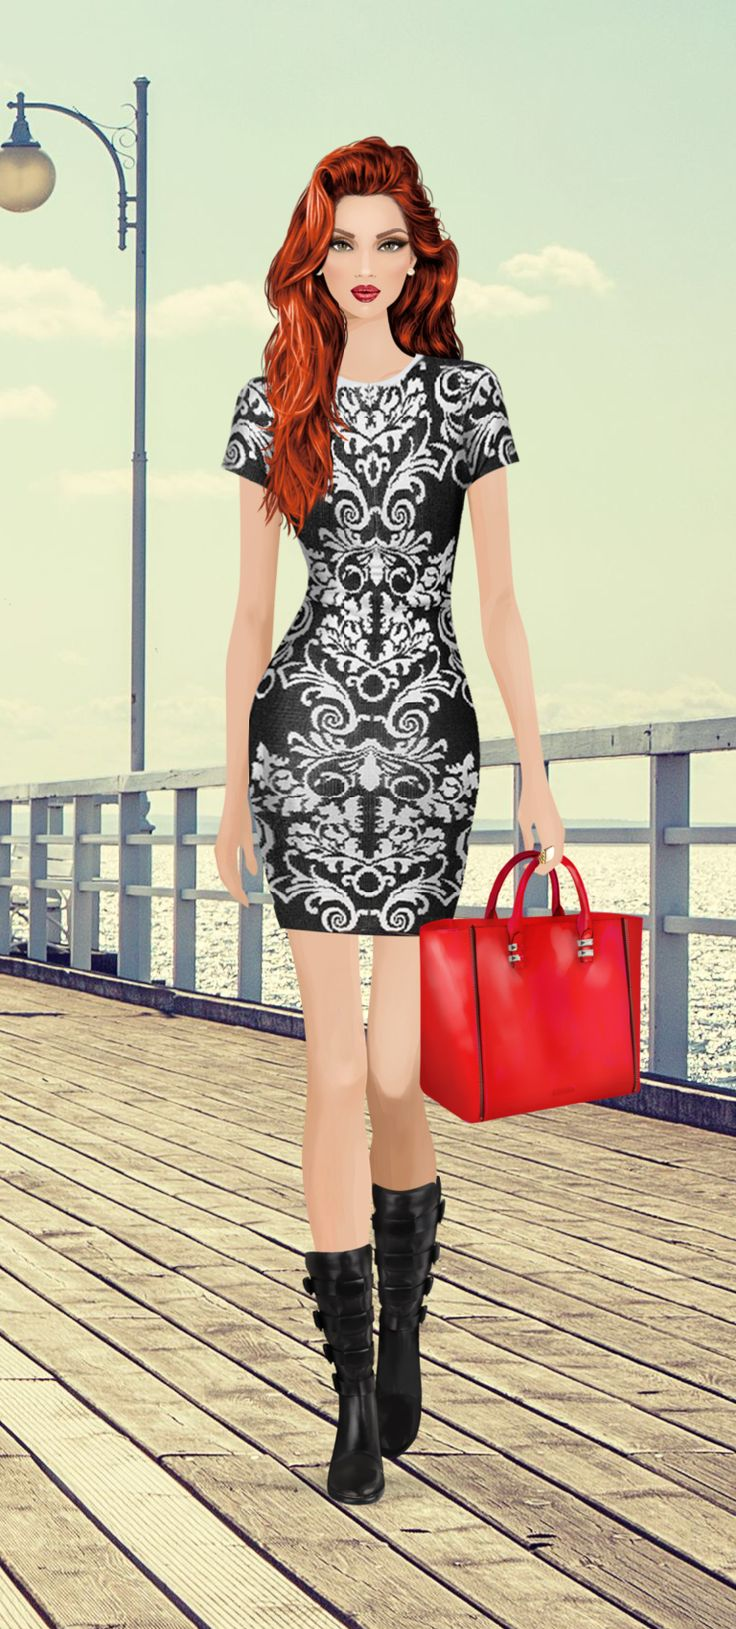 Red tote event on Covet Fashion Game